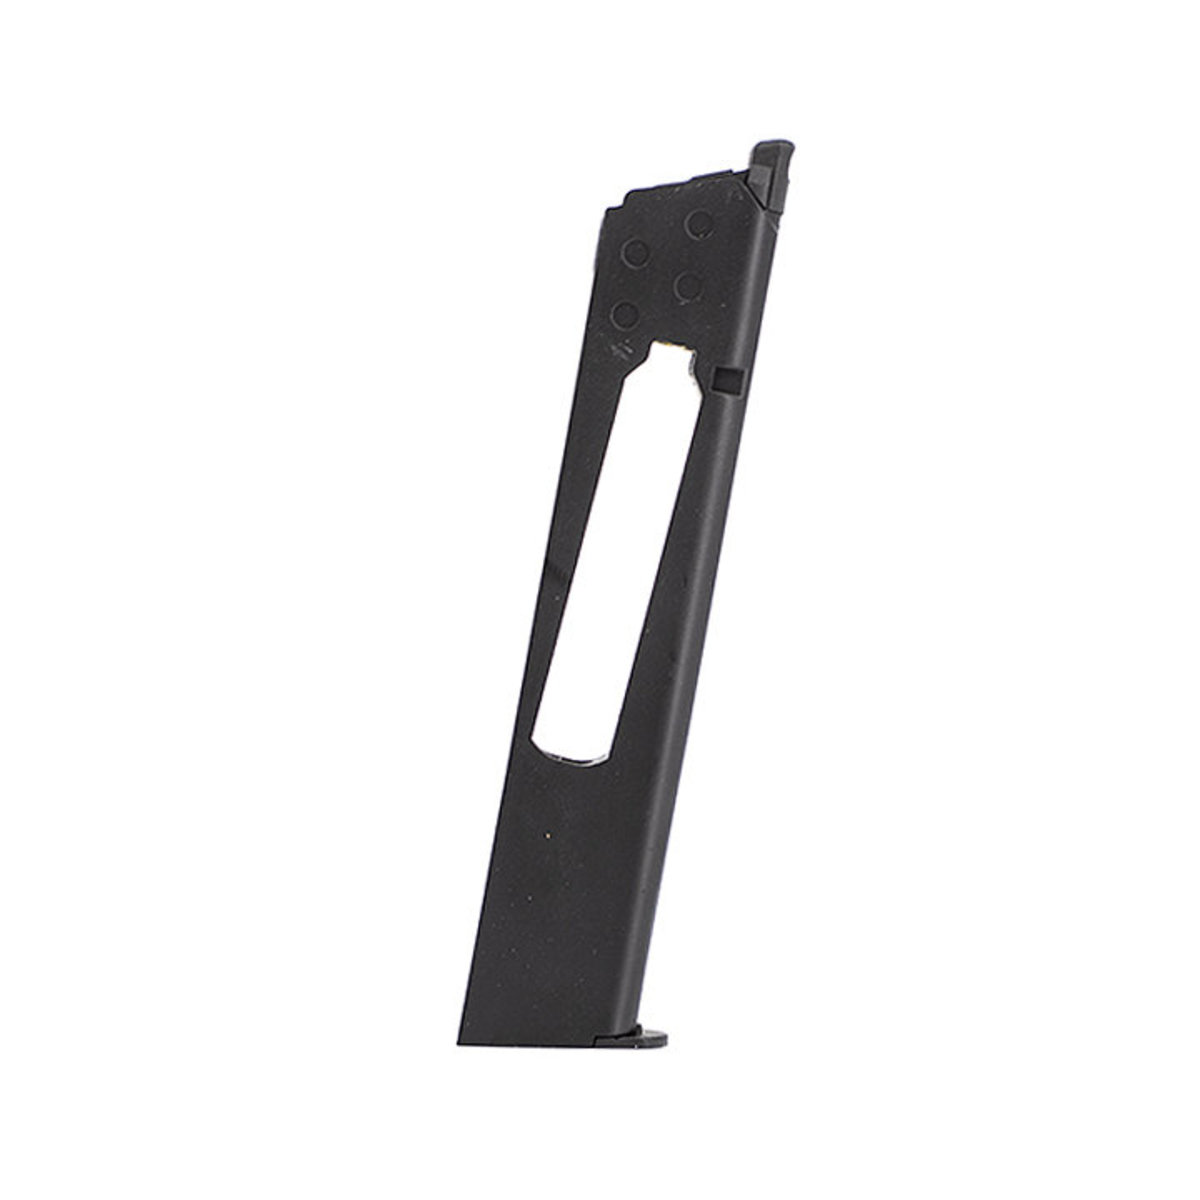 View larger image of Elite Force 27rd 1911 CO2 Extended Airsoft Magazine